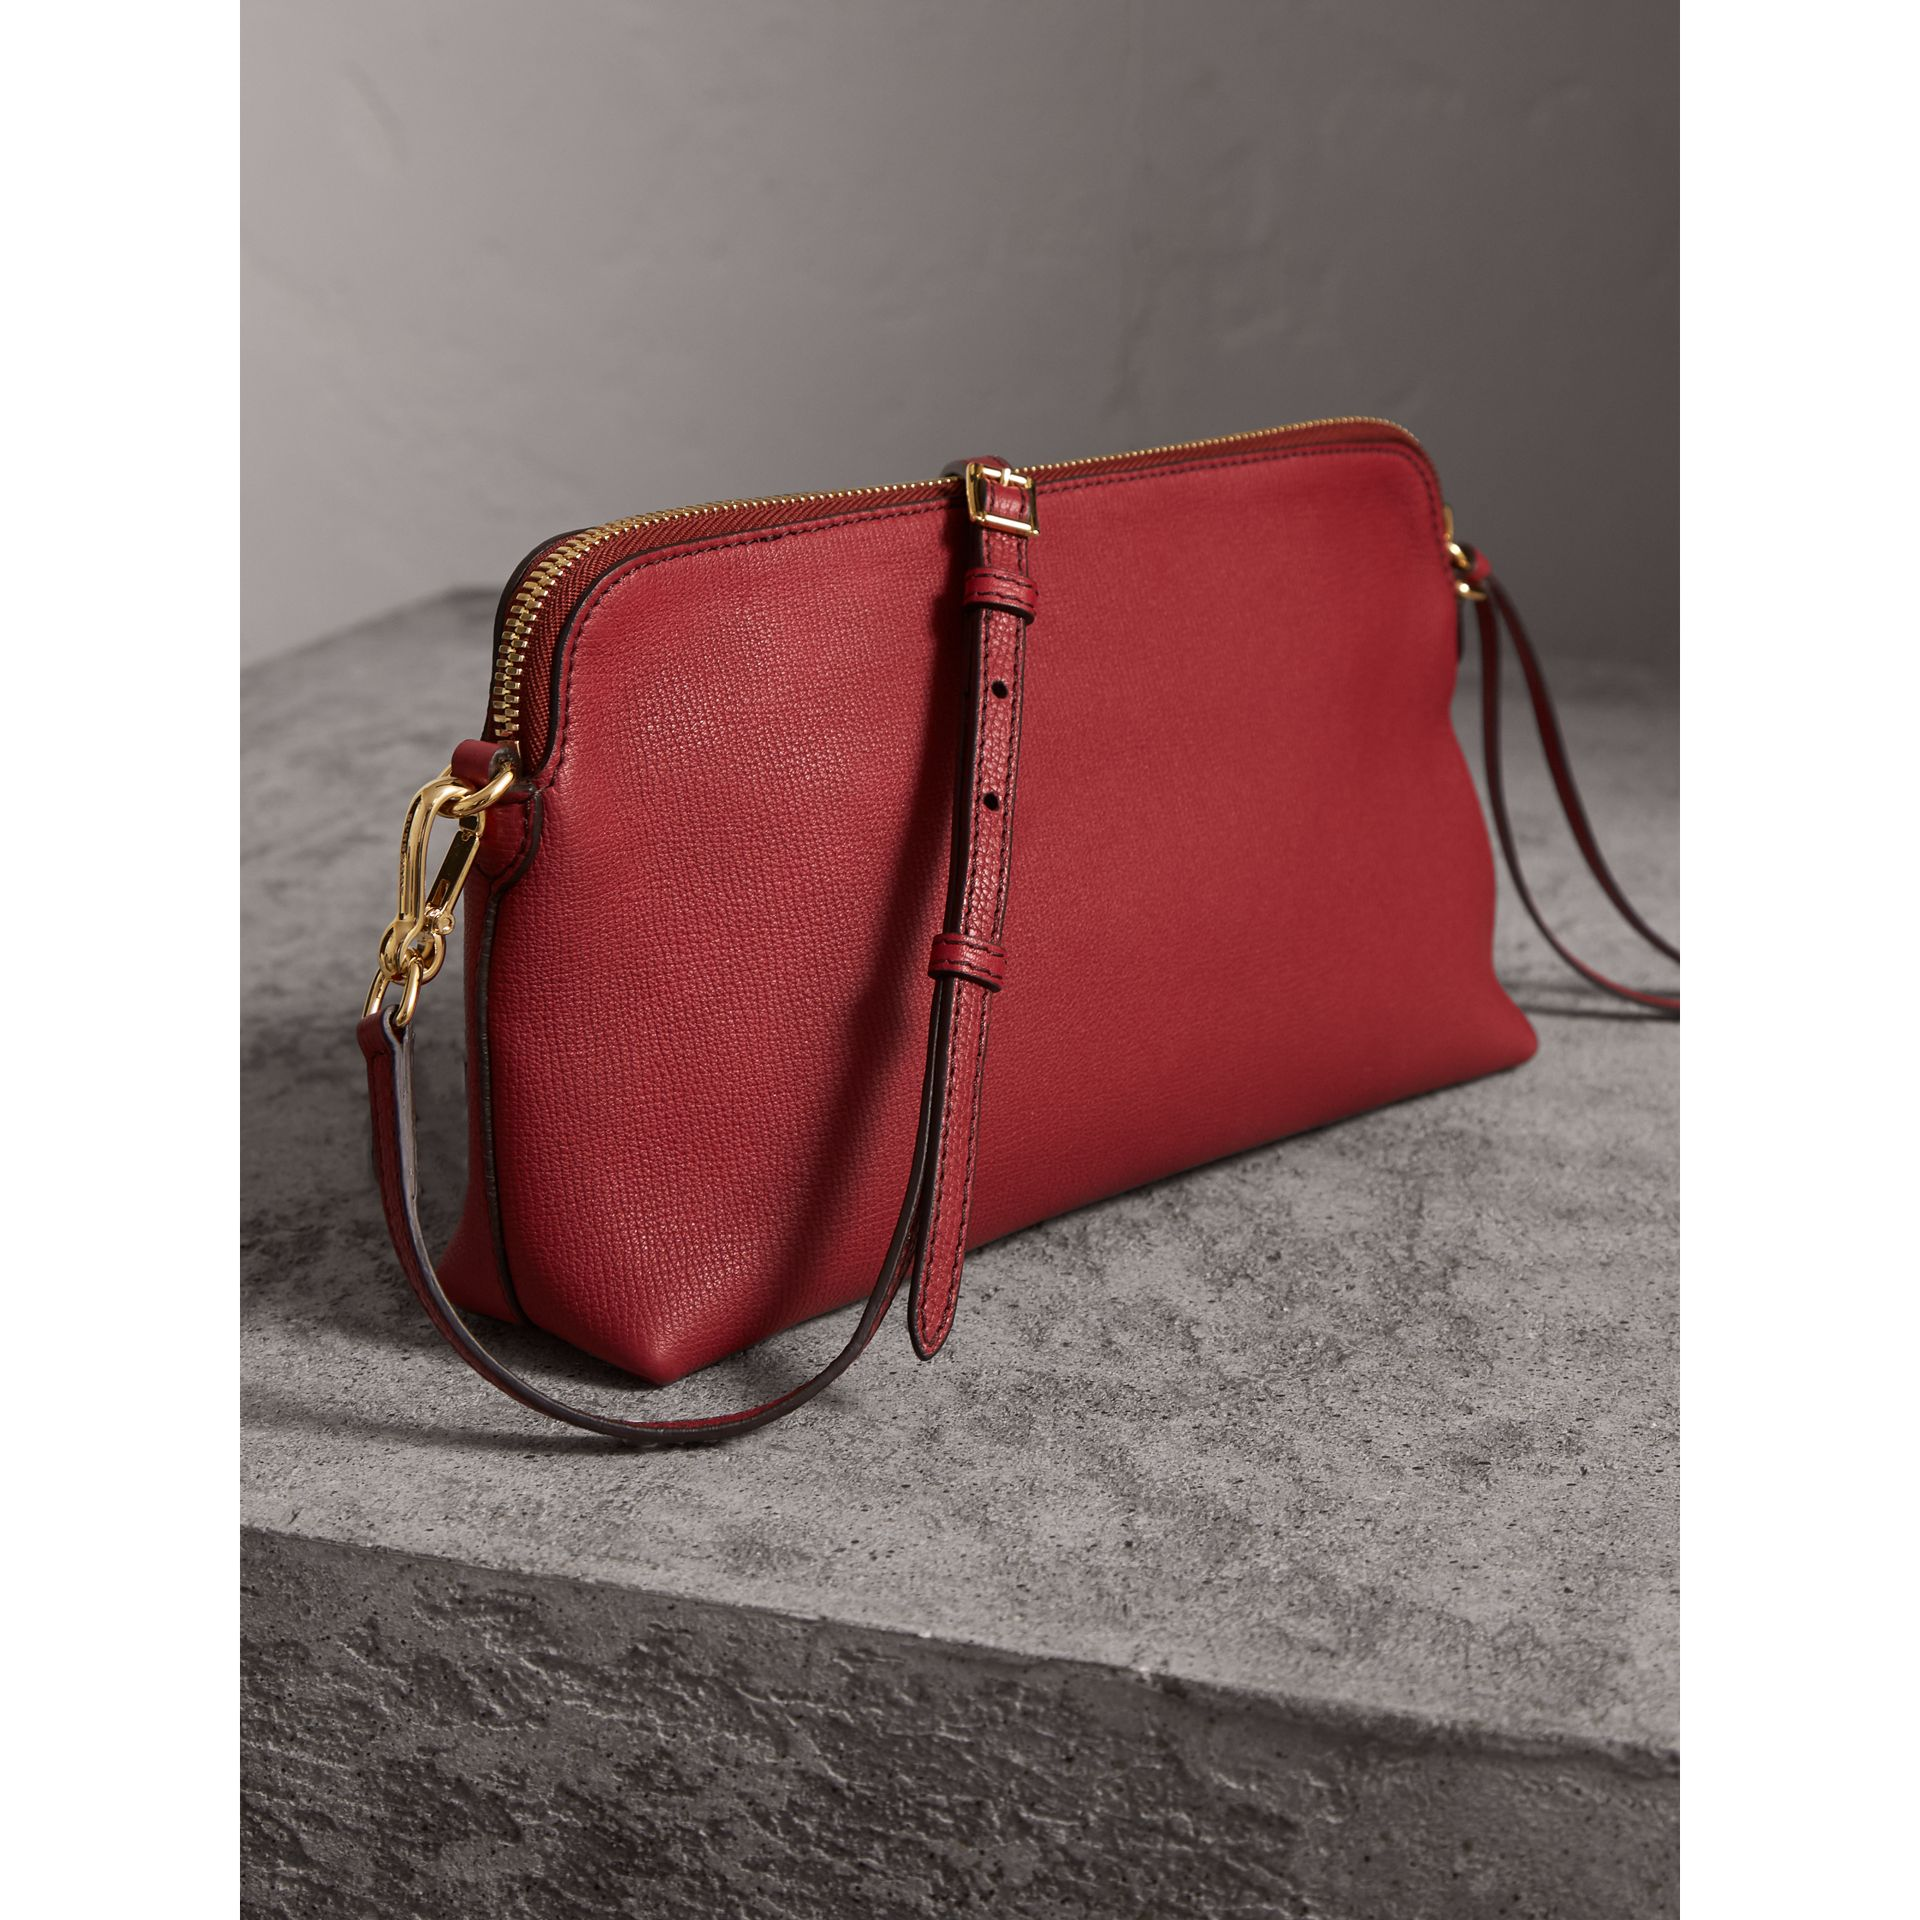 Grainy Leather Clutch Bag in Russet Red - Women | Burberry - gallery image 5